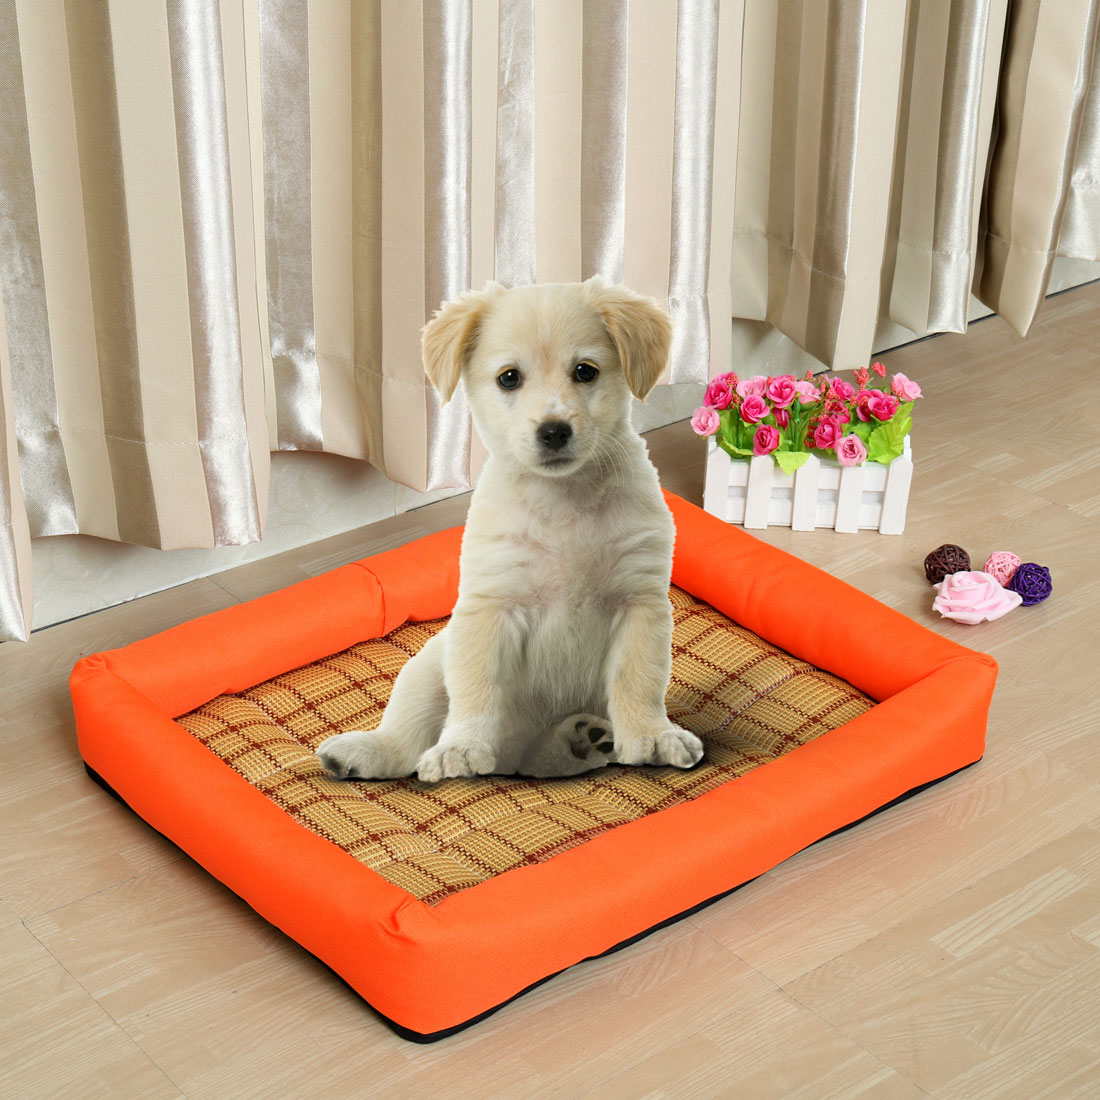 Pet Dog Cat Heat Resistant Pad Bamboo Carpet Summer Sleeping Bed